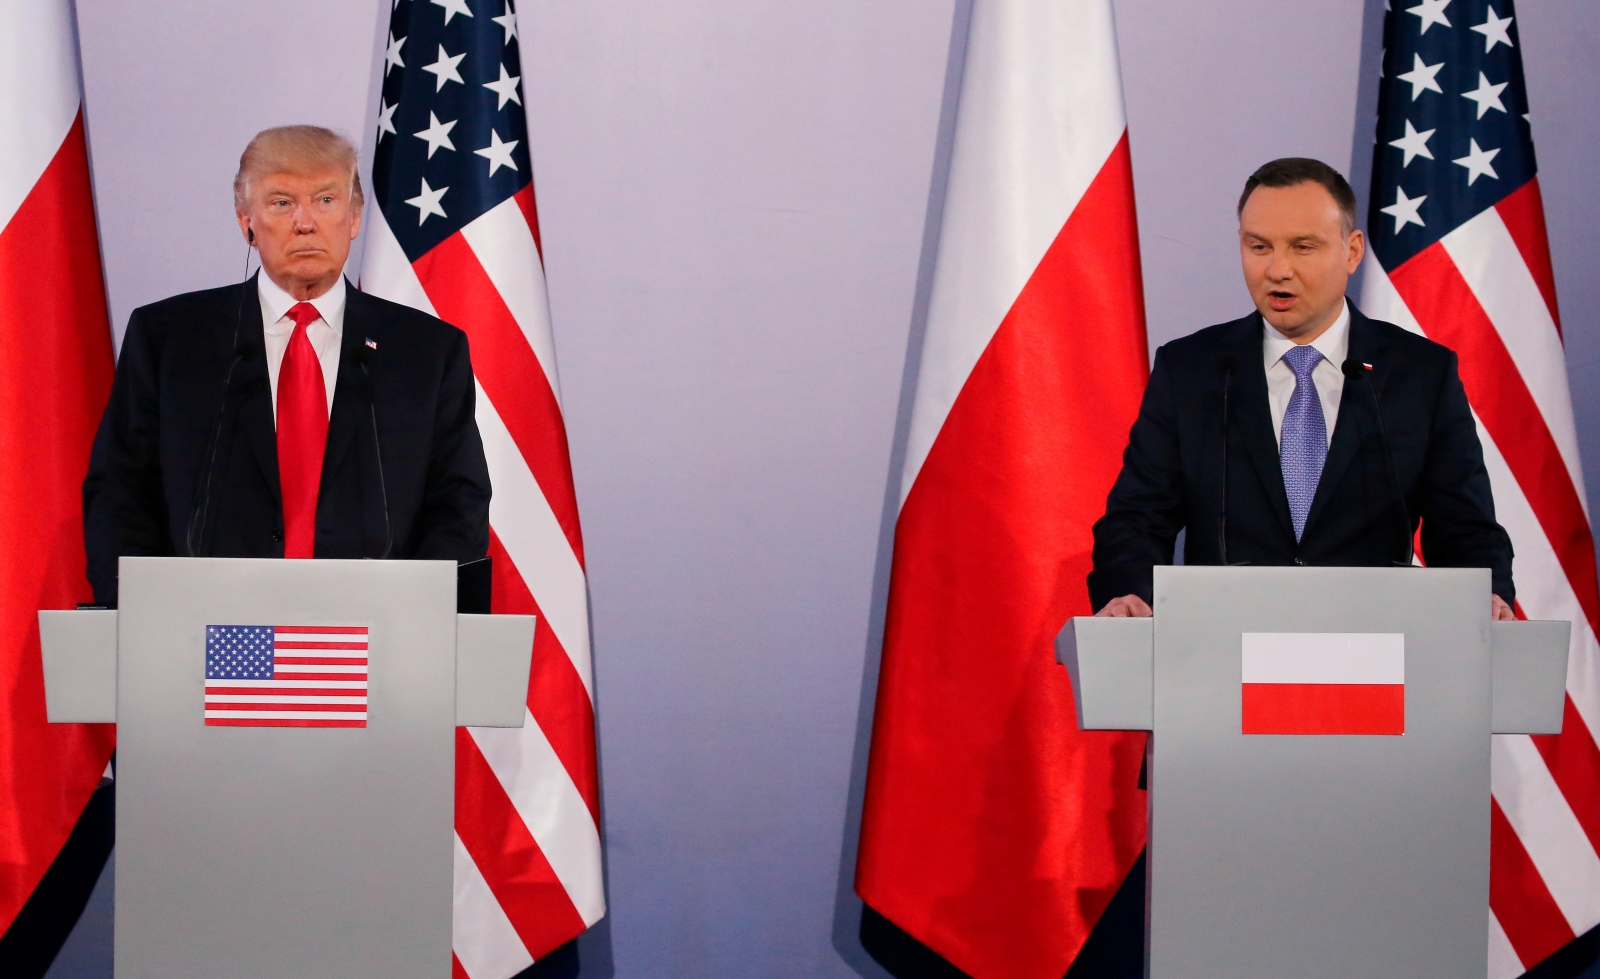 Trump in Poland for 16-hour stop